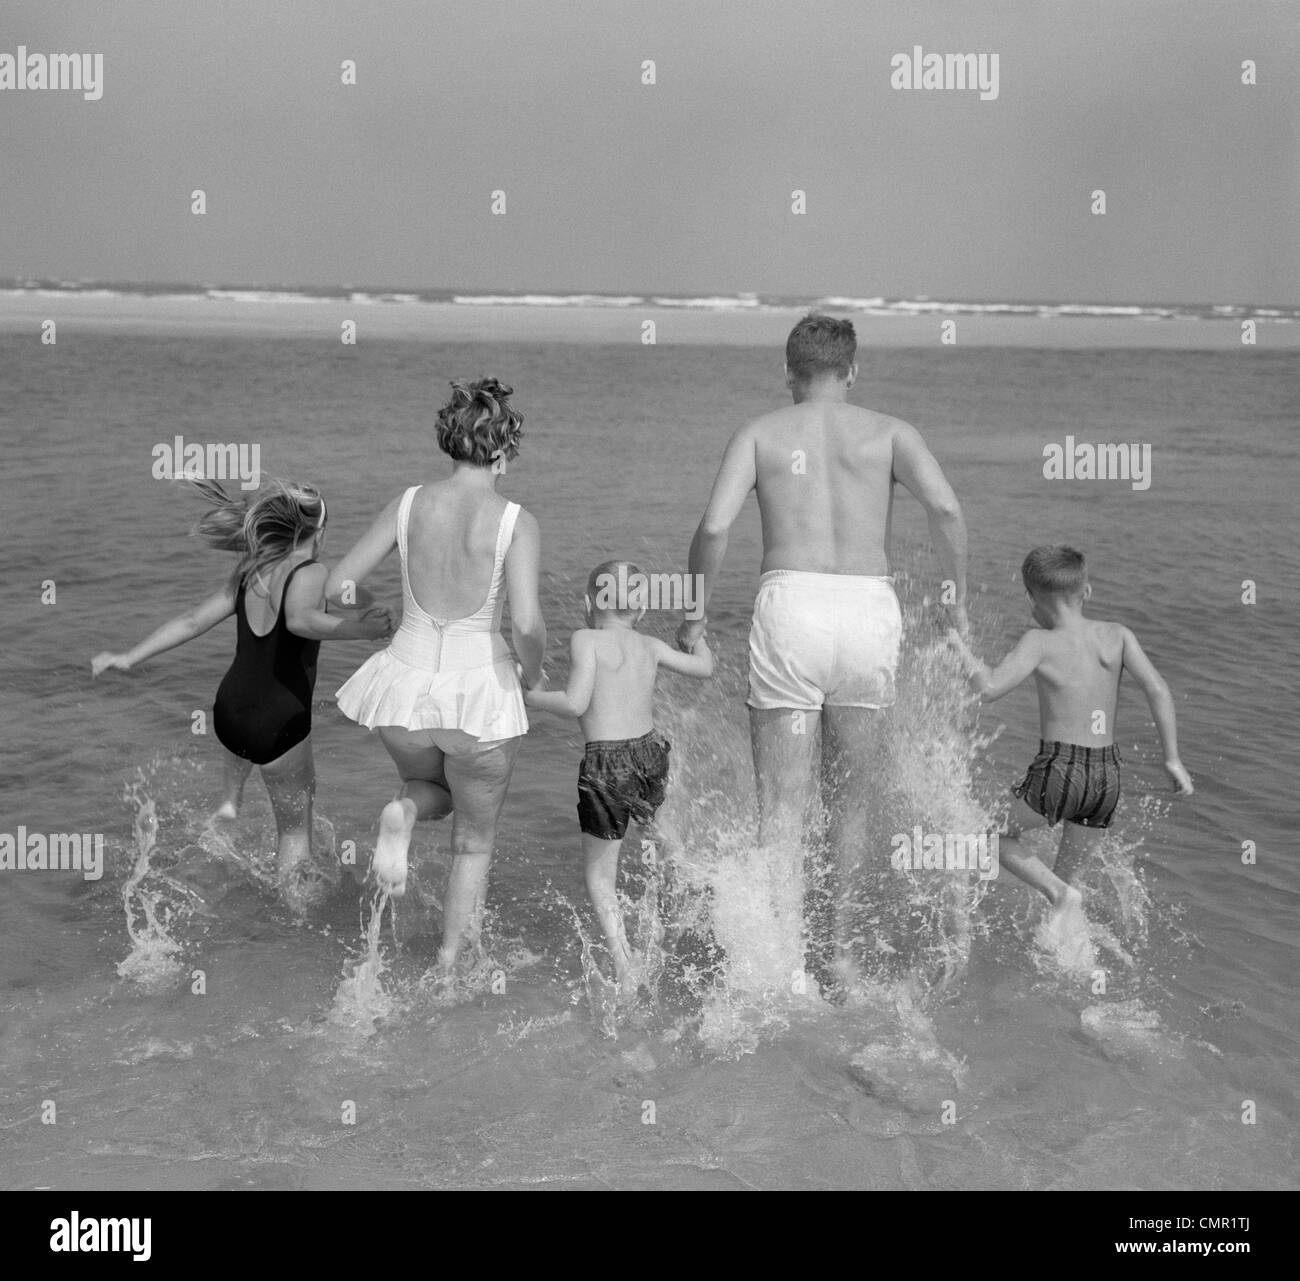 1960s BACK VIEW OF FAMILY OF 5 HOLDING HANDS RUNNING INTO OCEAN - Stock Image